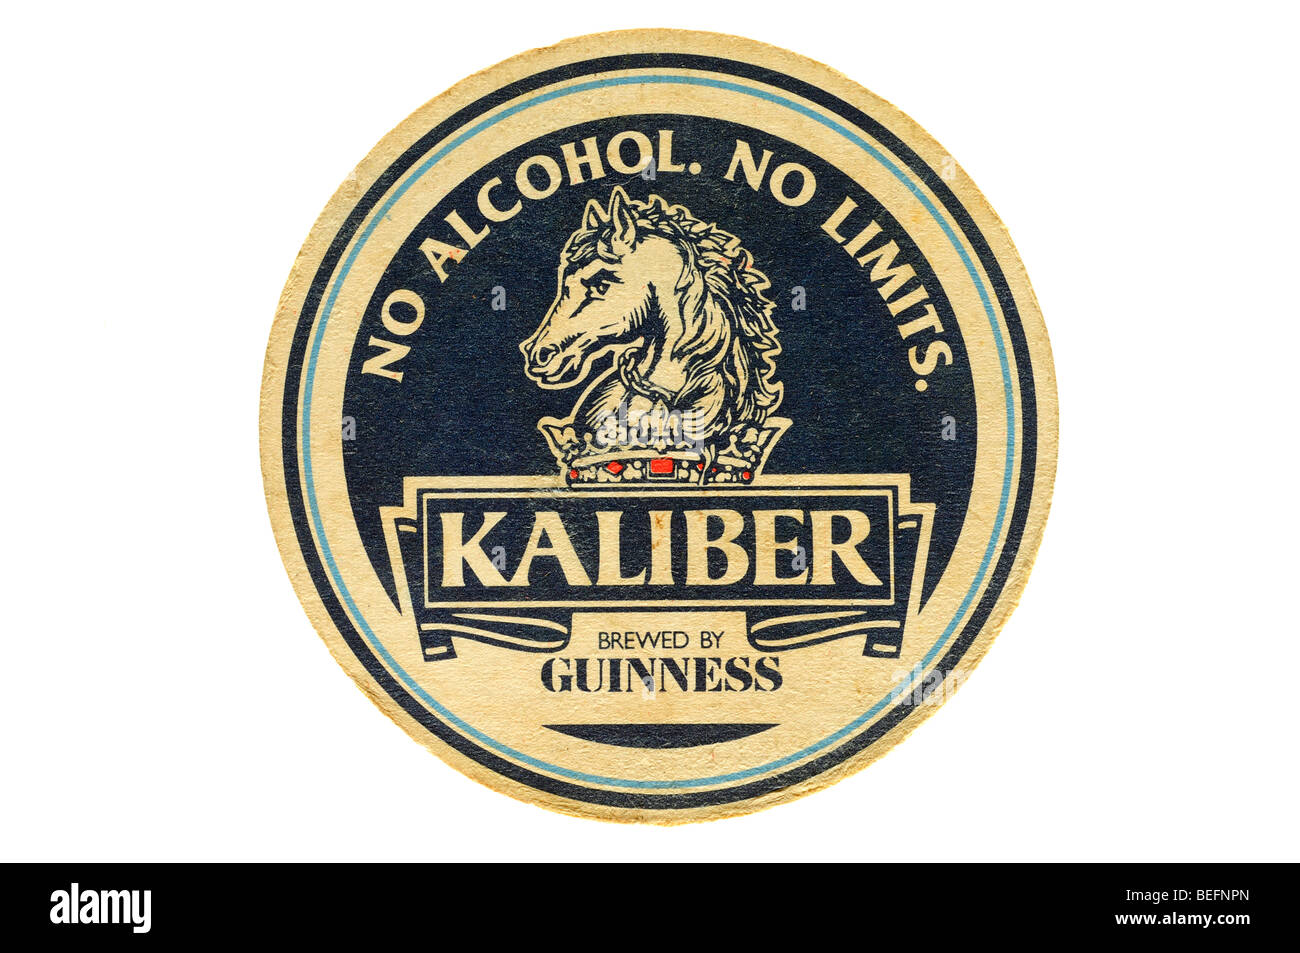 no alcohol no limits kaliber brewed by guiness - Stock Image